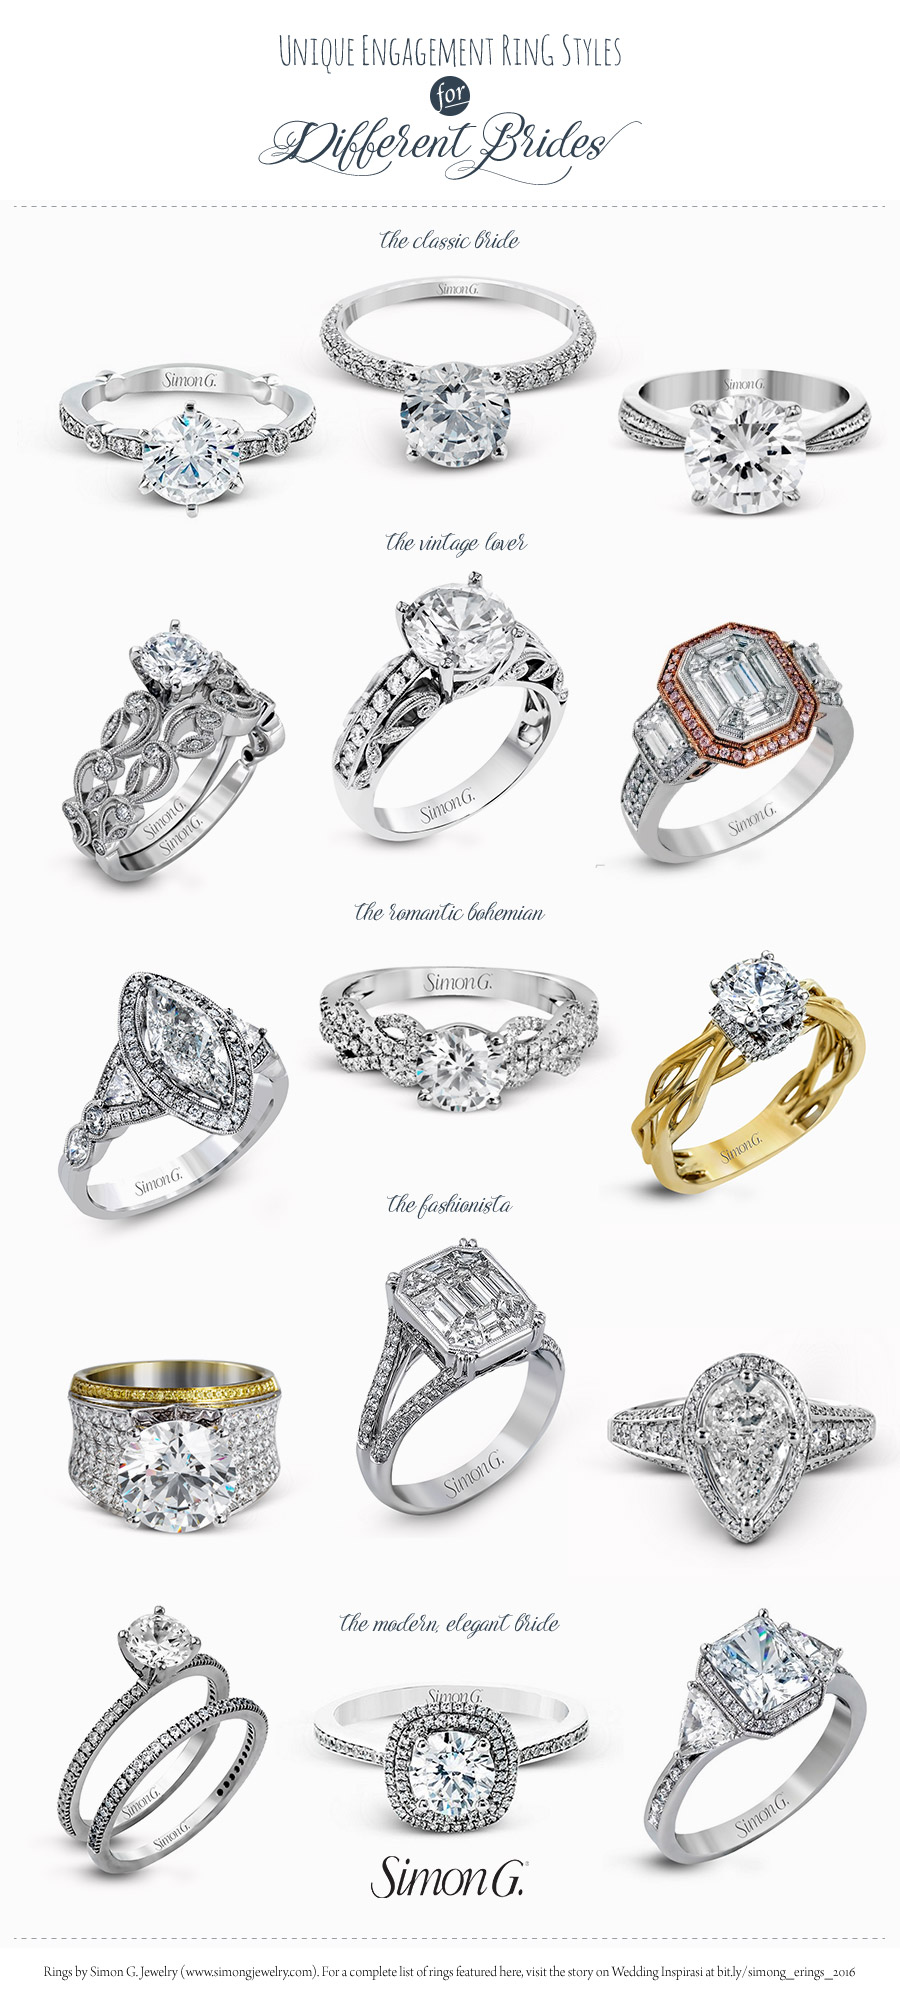 simon g engagement ring styles for every wedding